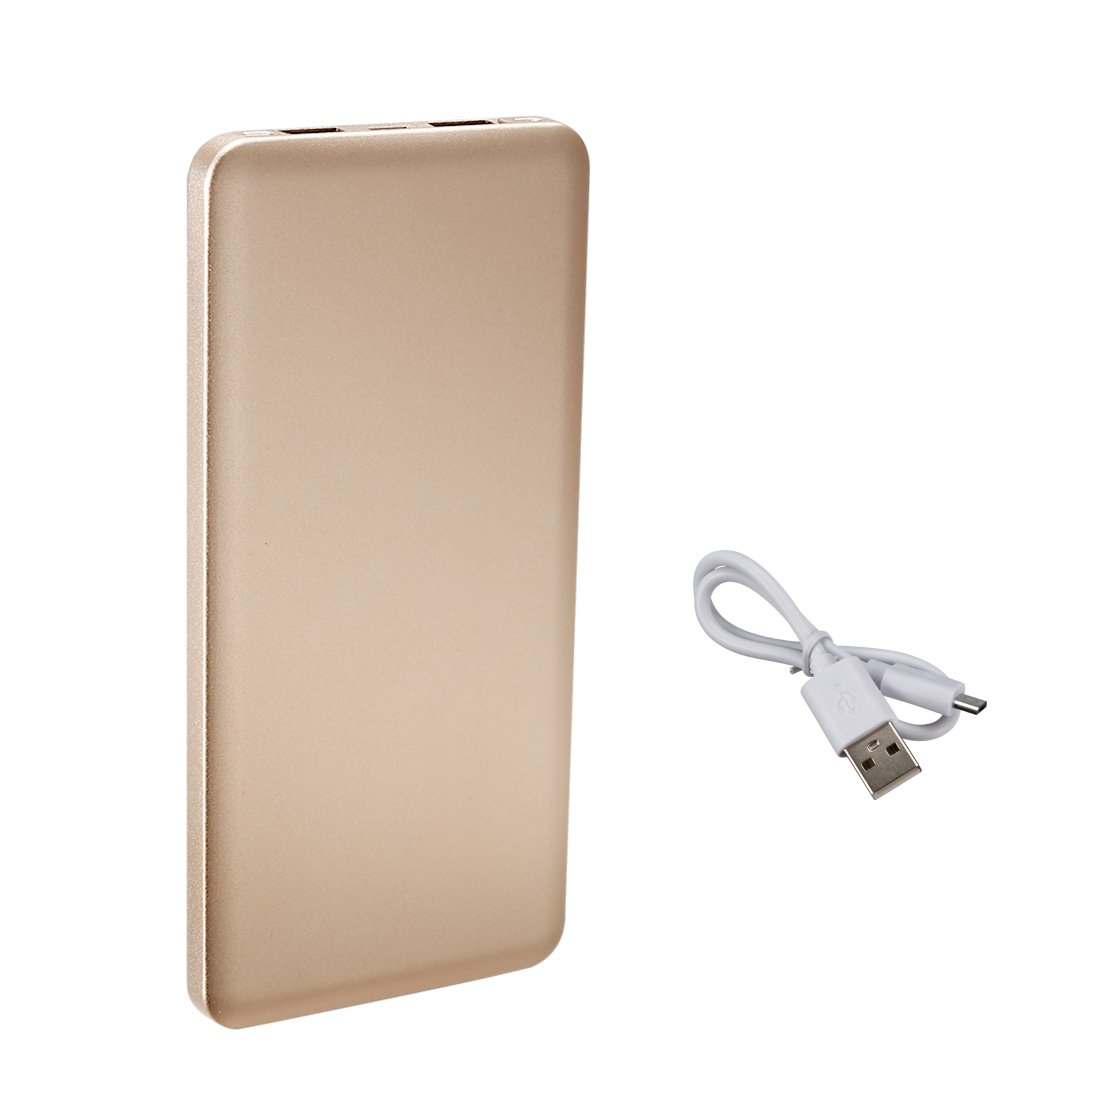 uxcell 8000mAh Portable Charger, Extremely Thin, Power bank, Dual USB Ports, for iPhones, Android, iPads, Tablets, MP3, MP4 Players and Cameras, Rose Gold